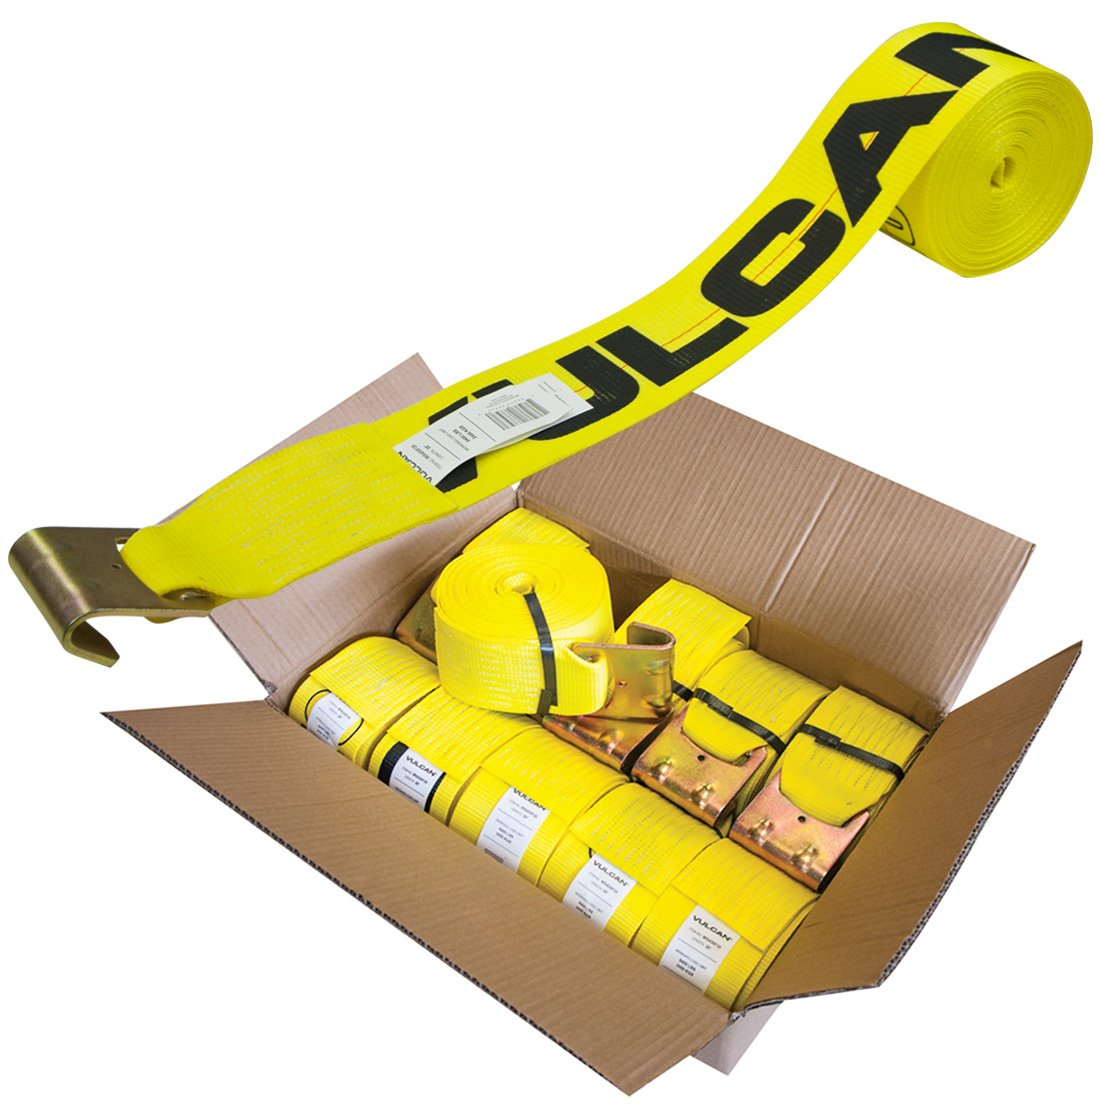 Vulcan Classic Winch Strap with Flat Hook - 5,000 lbs. Safe Working Load (4'' x 30' - Yellow - Pack of 10)